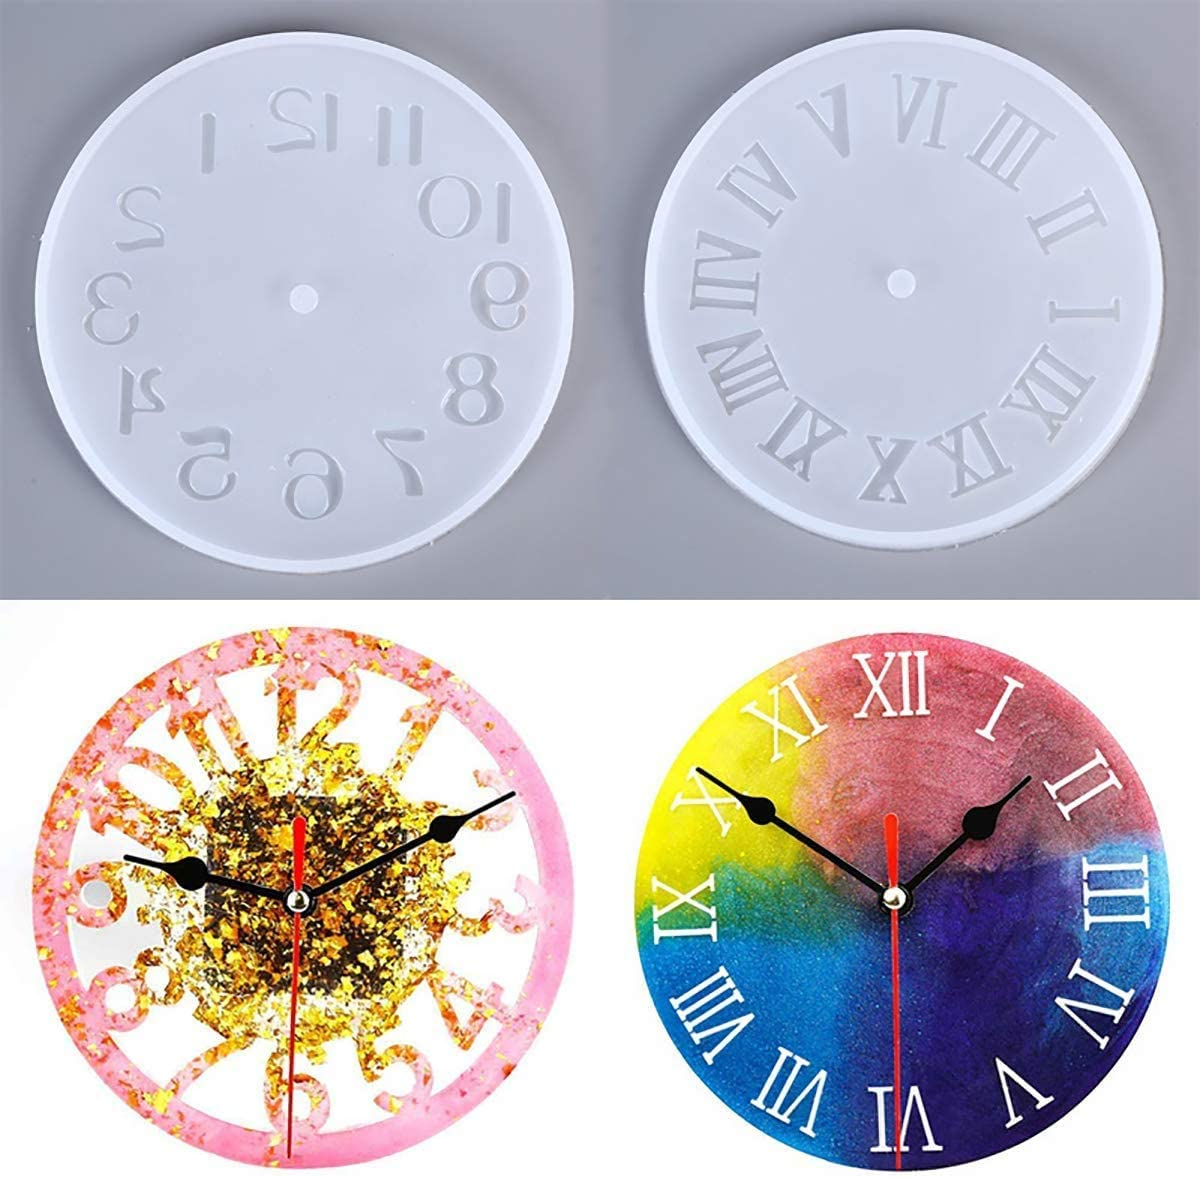 ZHIHU 4 pcs Clock Resin Mold Roman Numerals Constellation Silicone Mold Handmade DIY Epoxy Silicone Resin Molds for Jewelry Making Tools